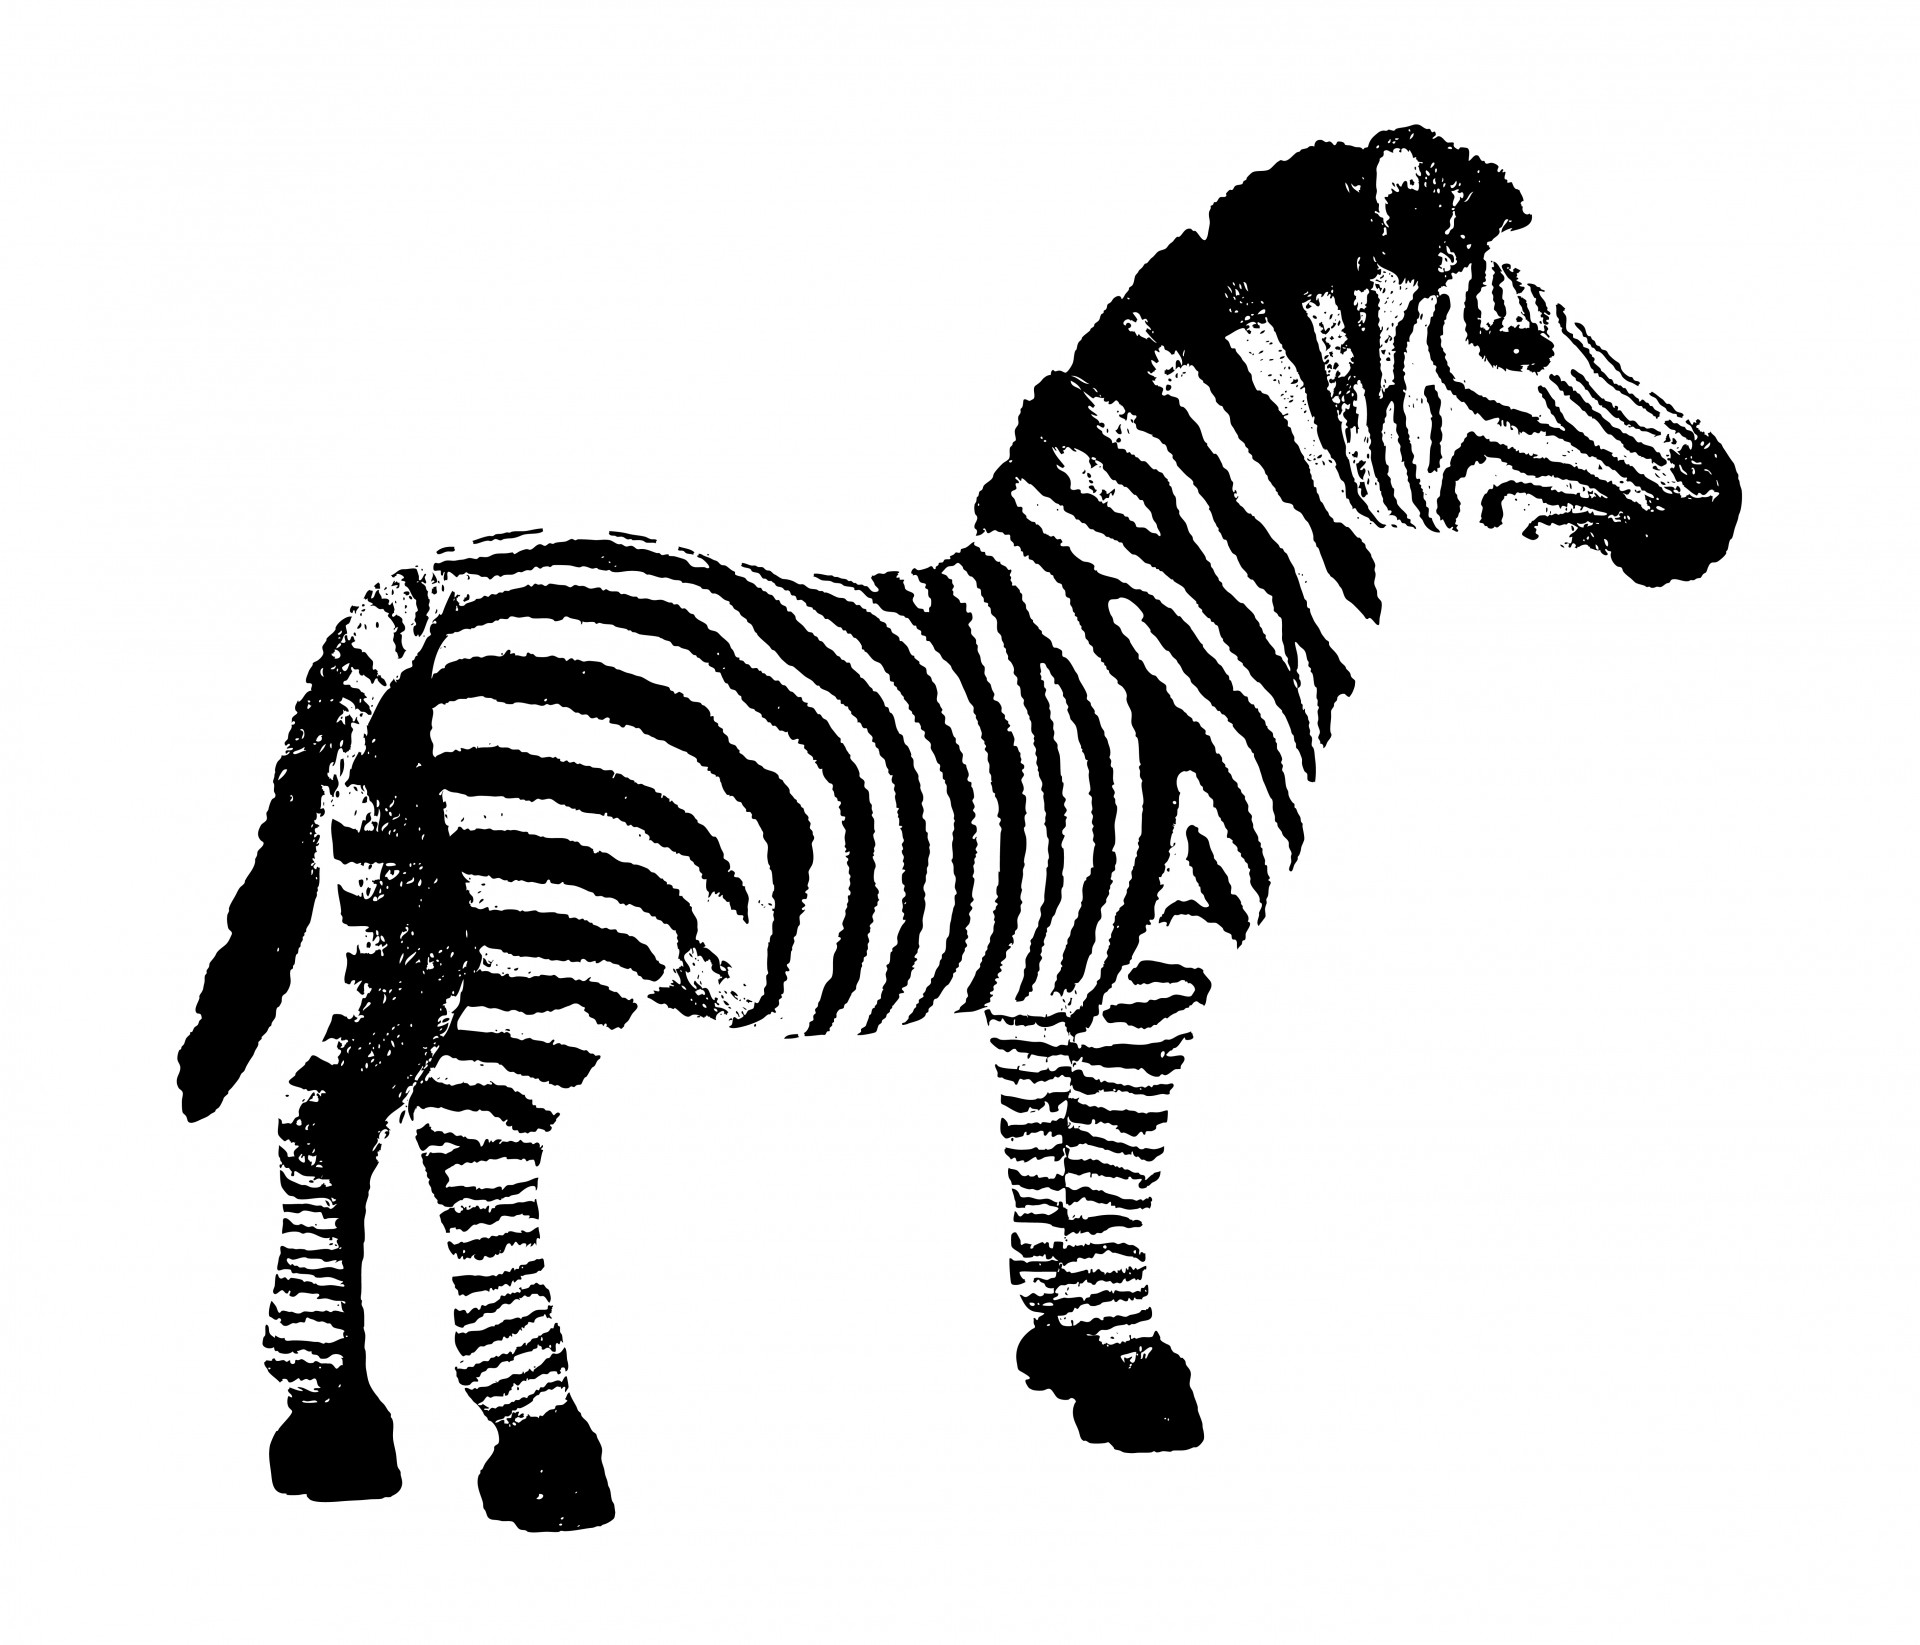 Free stock photo public. Clipart zebra